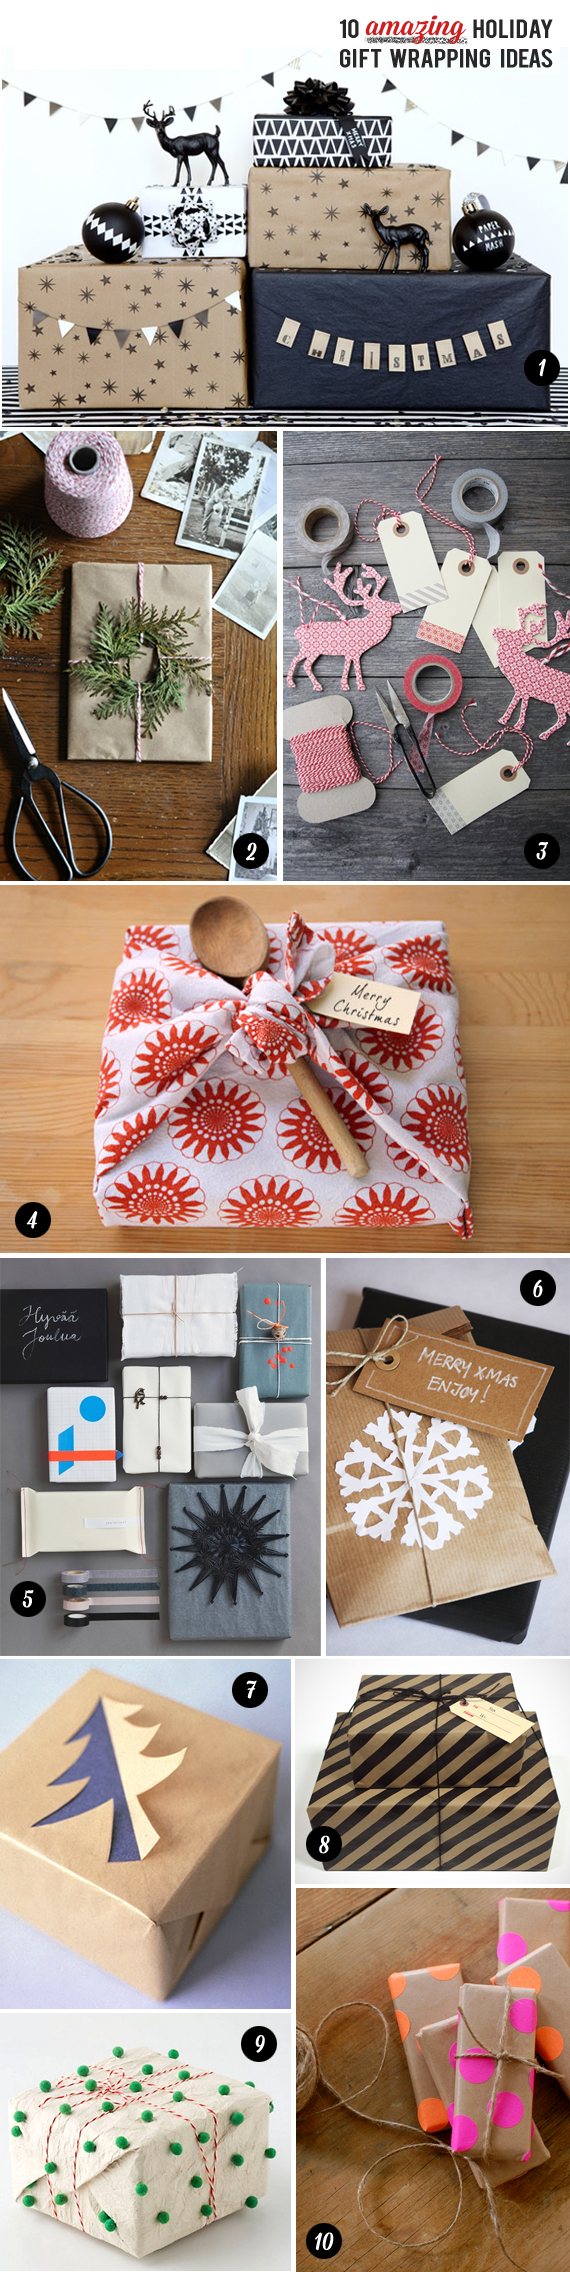 10 Amazing Holiday Gift Wrapping Ideas // Bubby & Bean